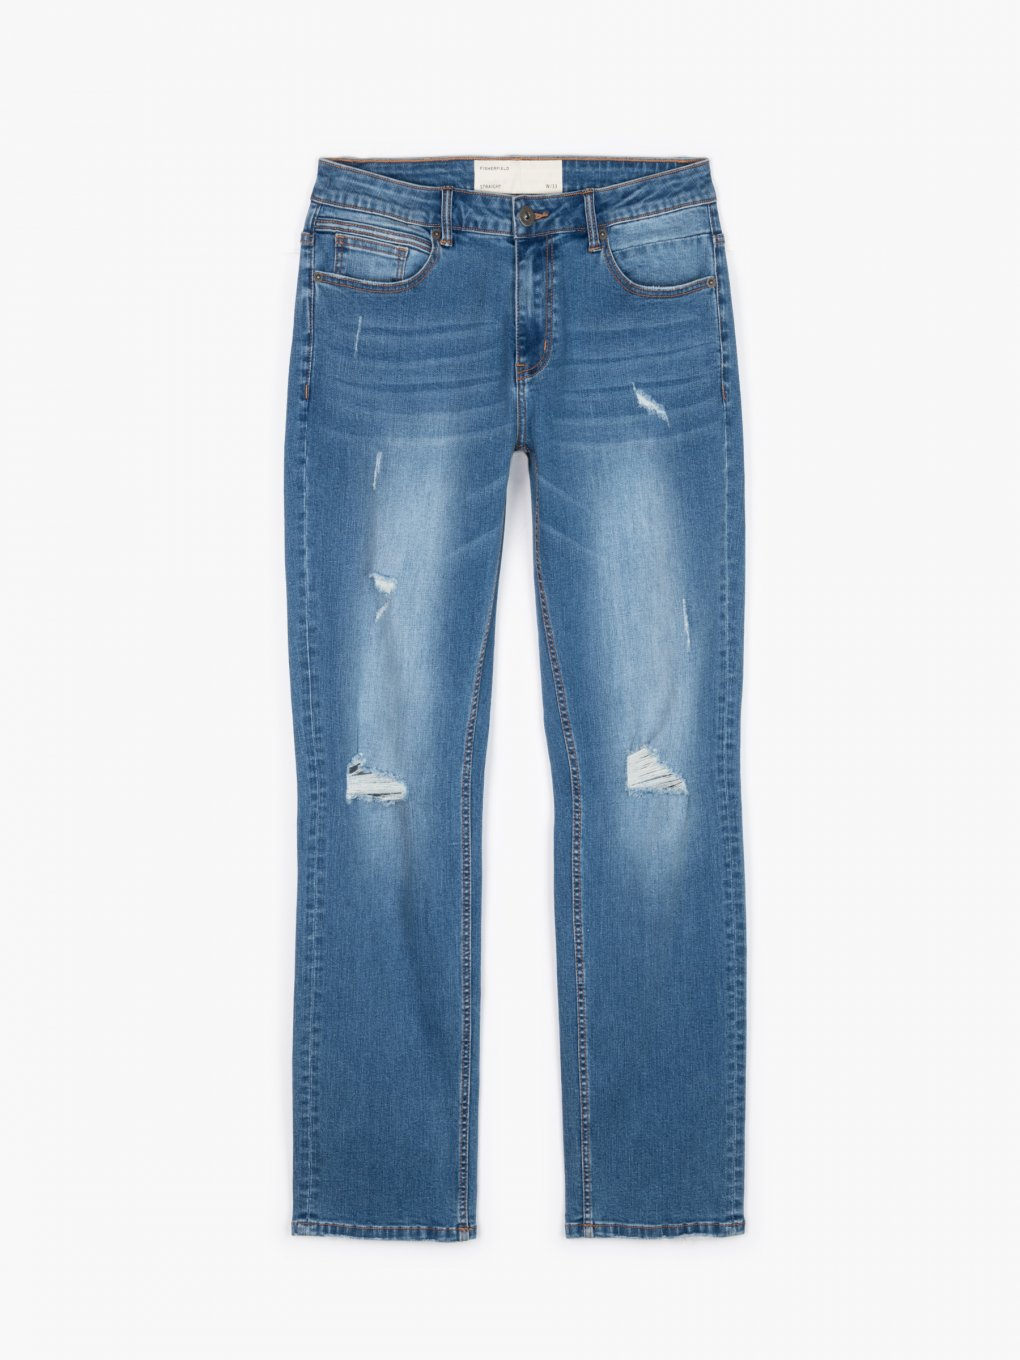 Regular jeans with damages